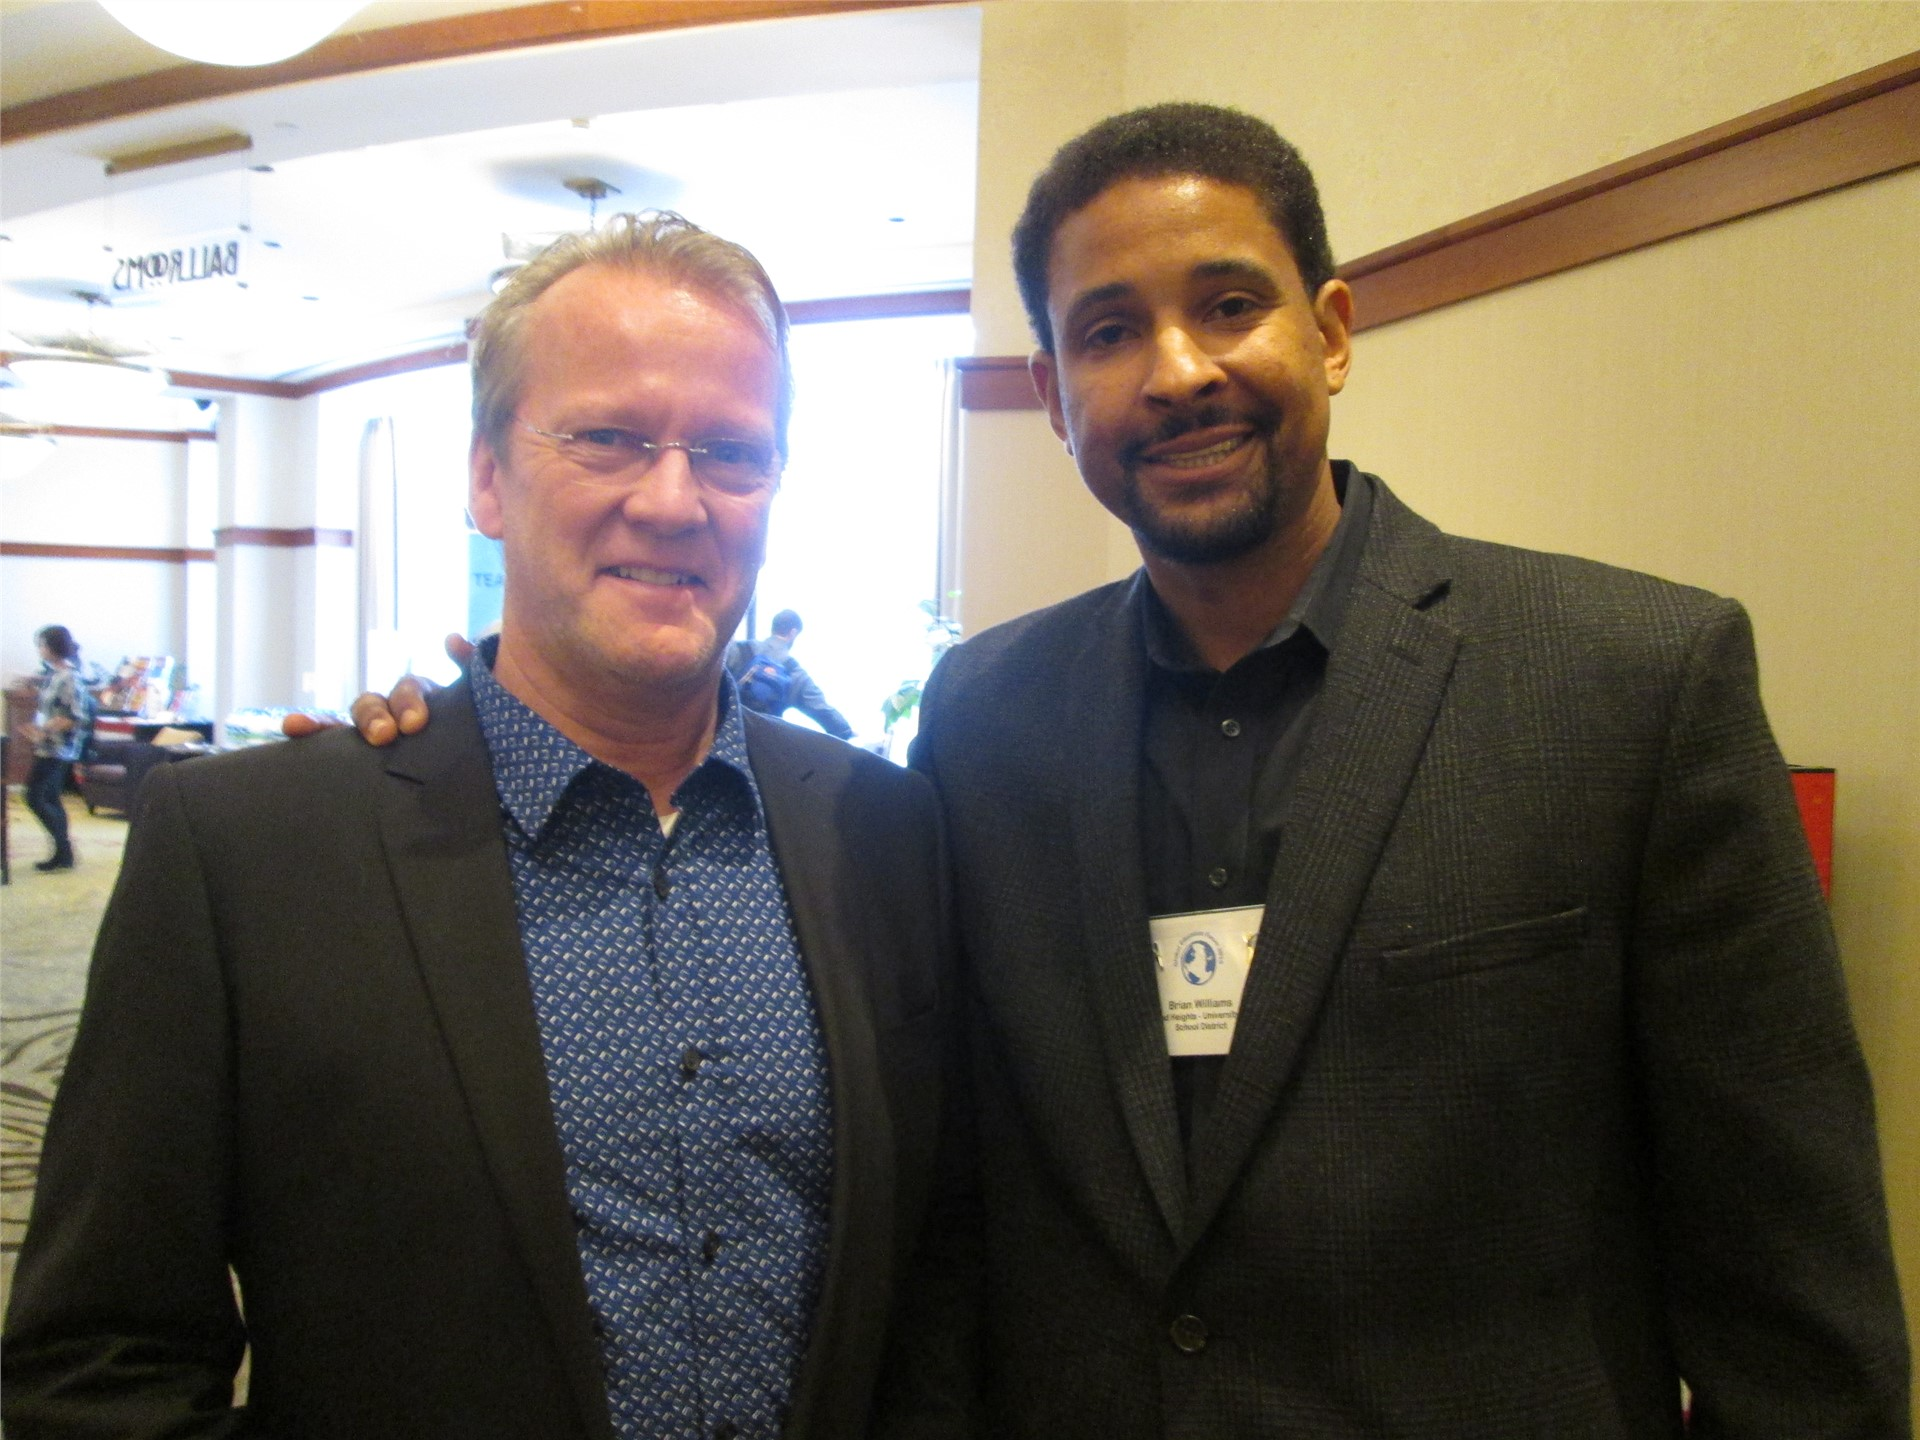 Dr. Williams speaks at University of Pennsylvania with author Dr. Pasi Sahlberg.